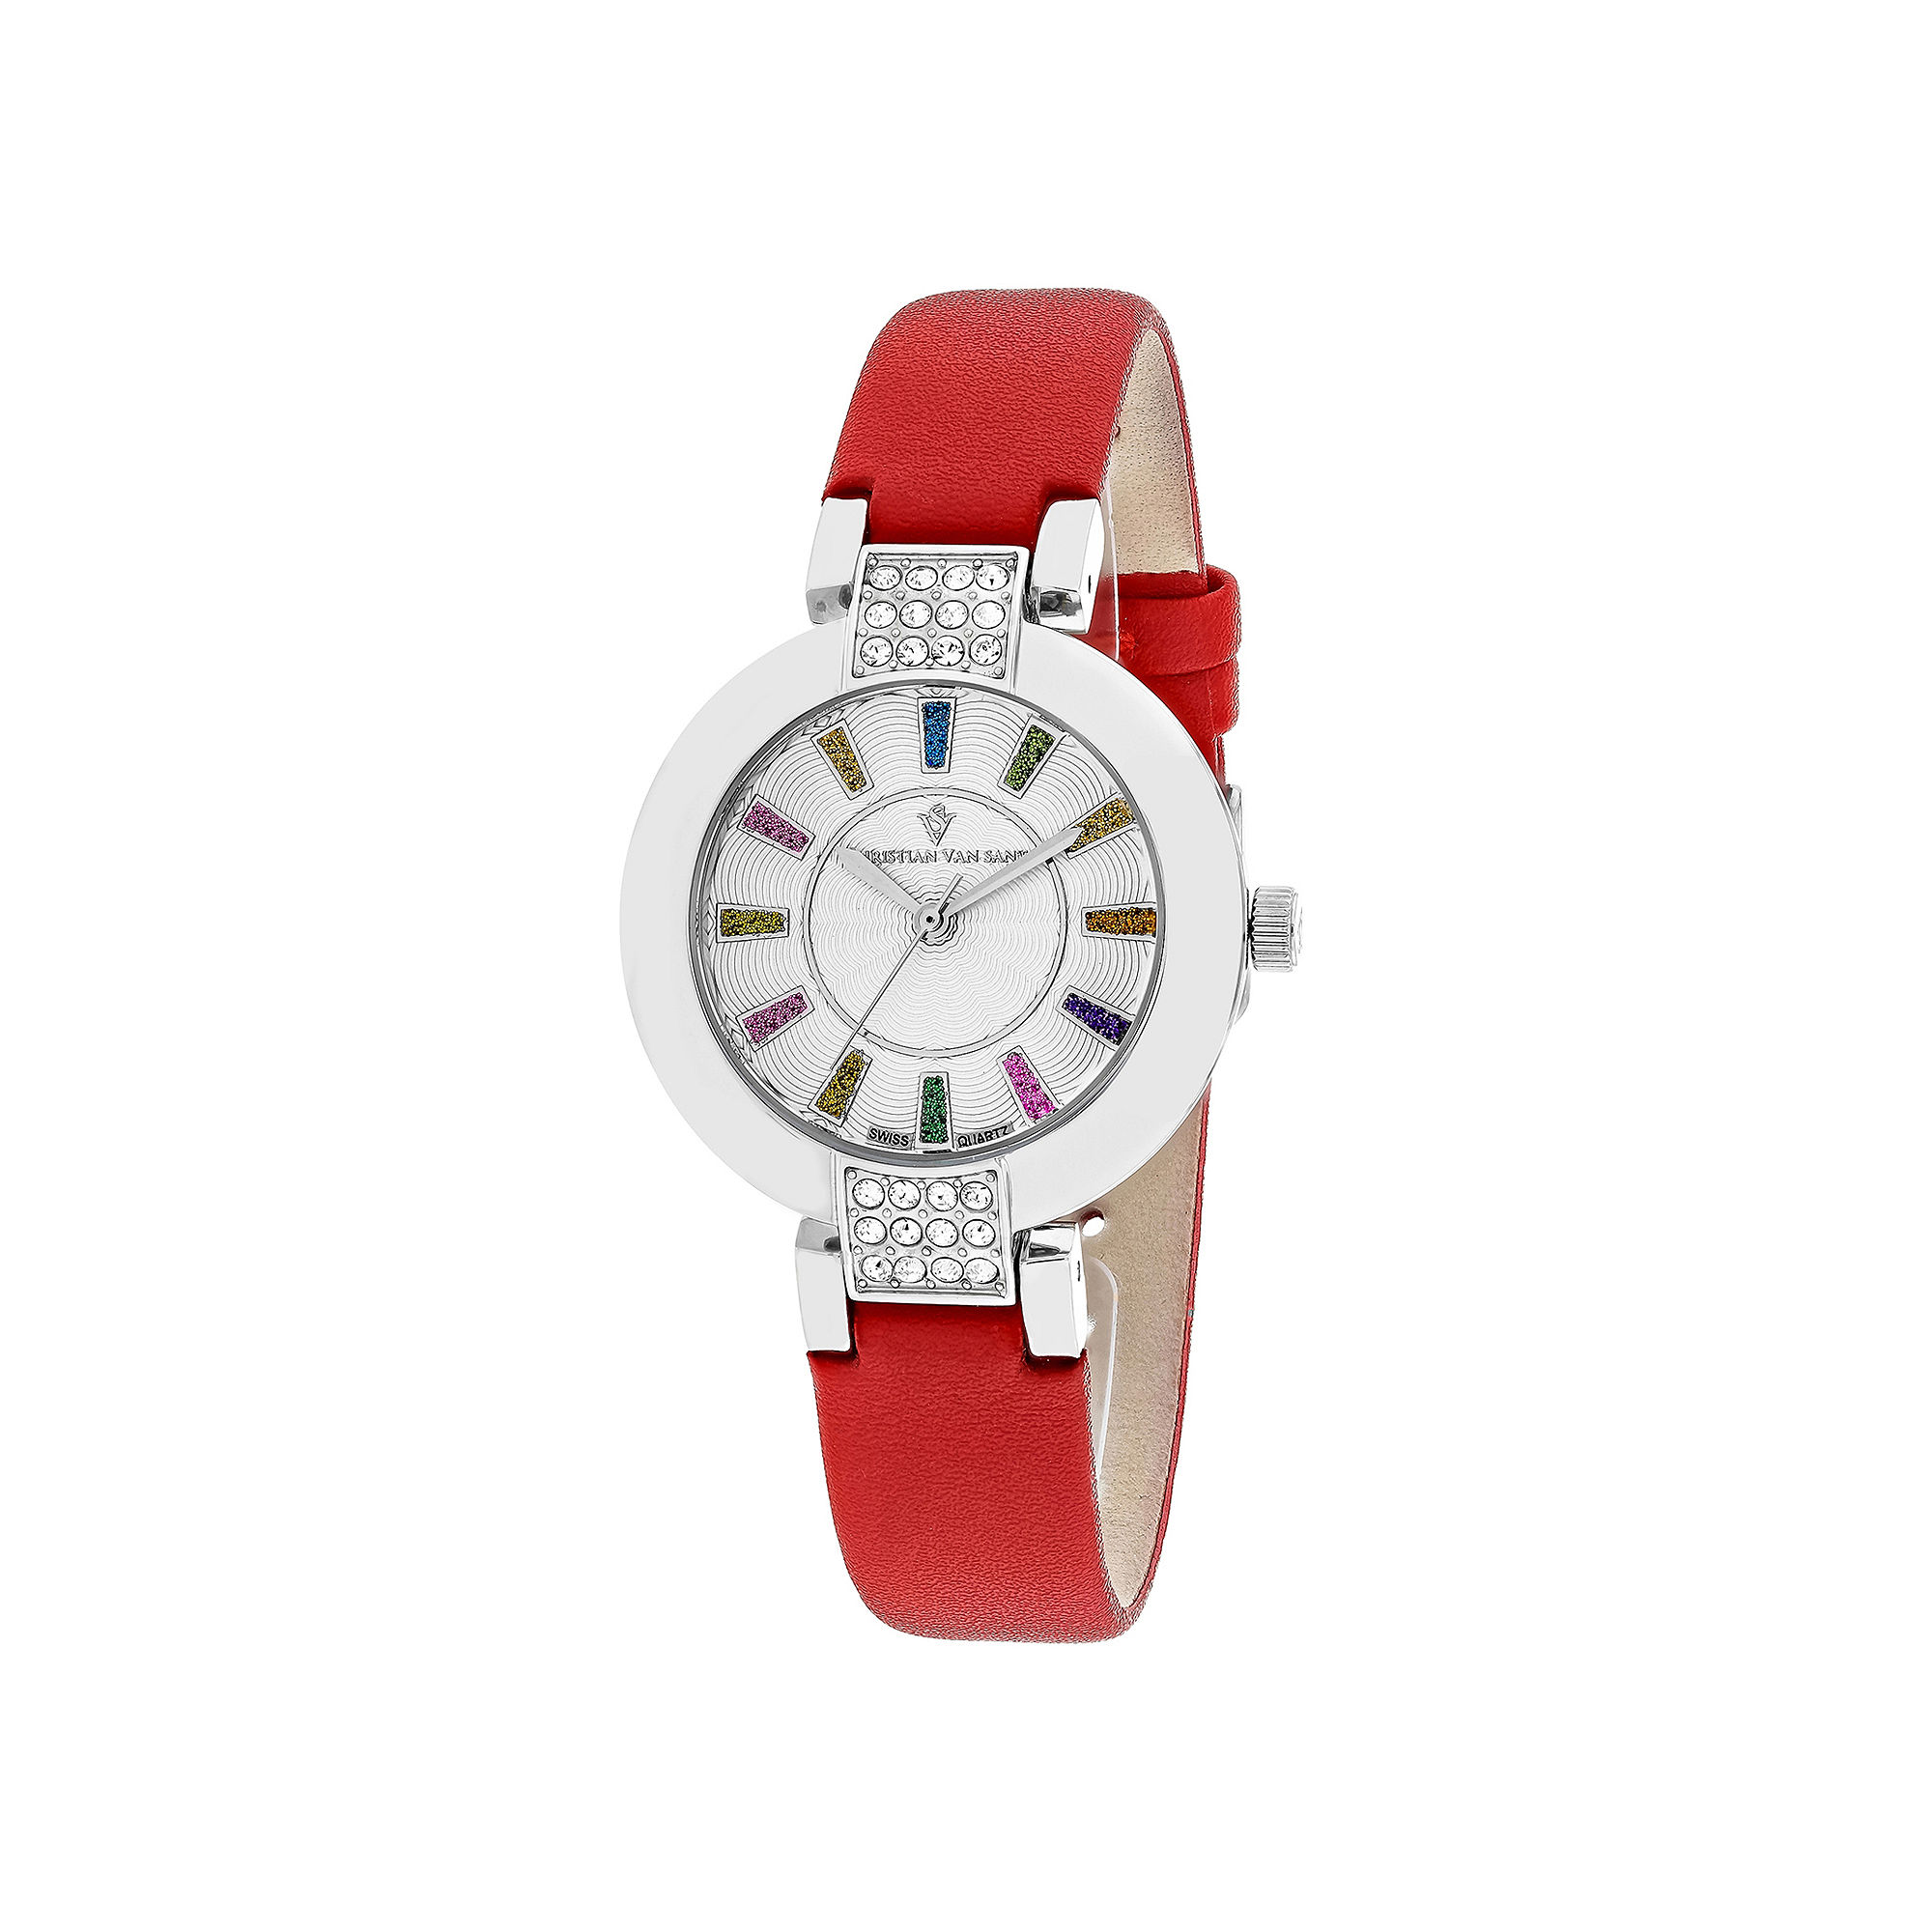 Christian Van Sant Celine Womens Silver-Tone Dial and Red Leather Strap Watch